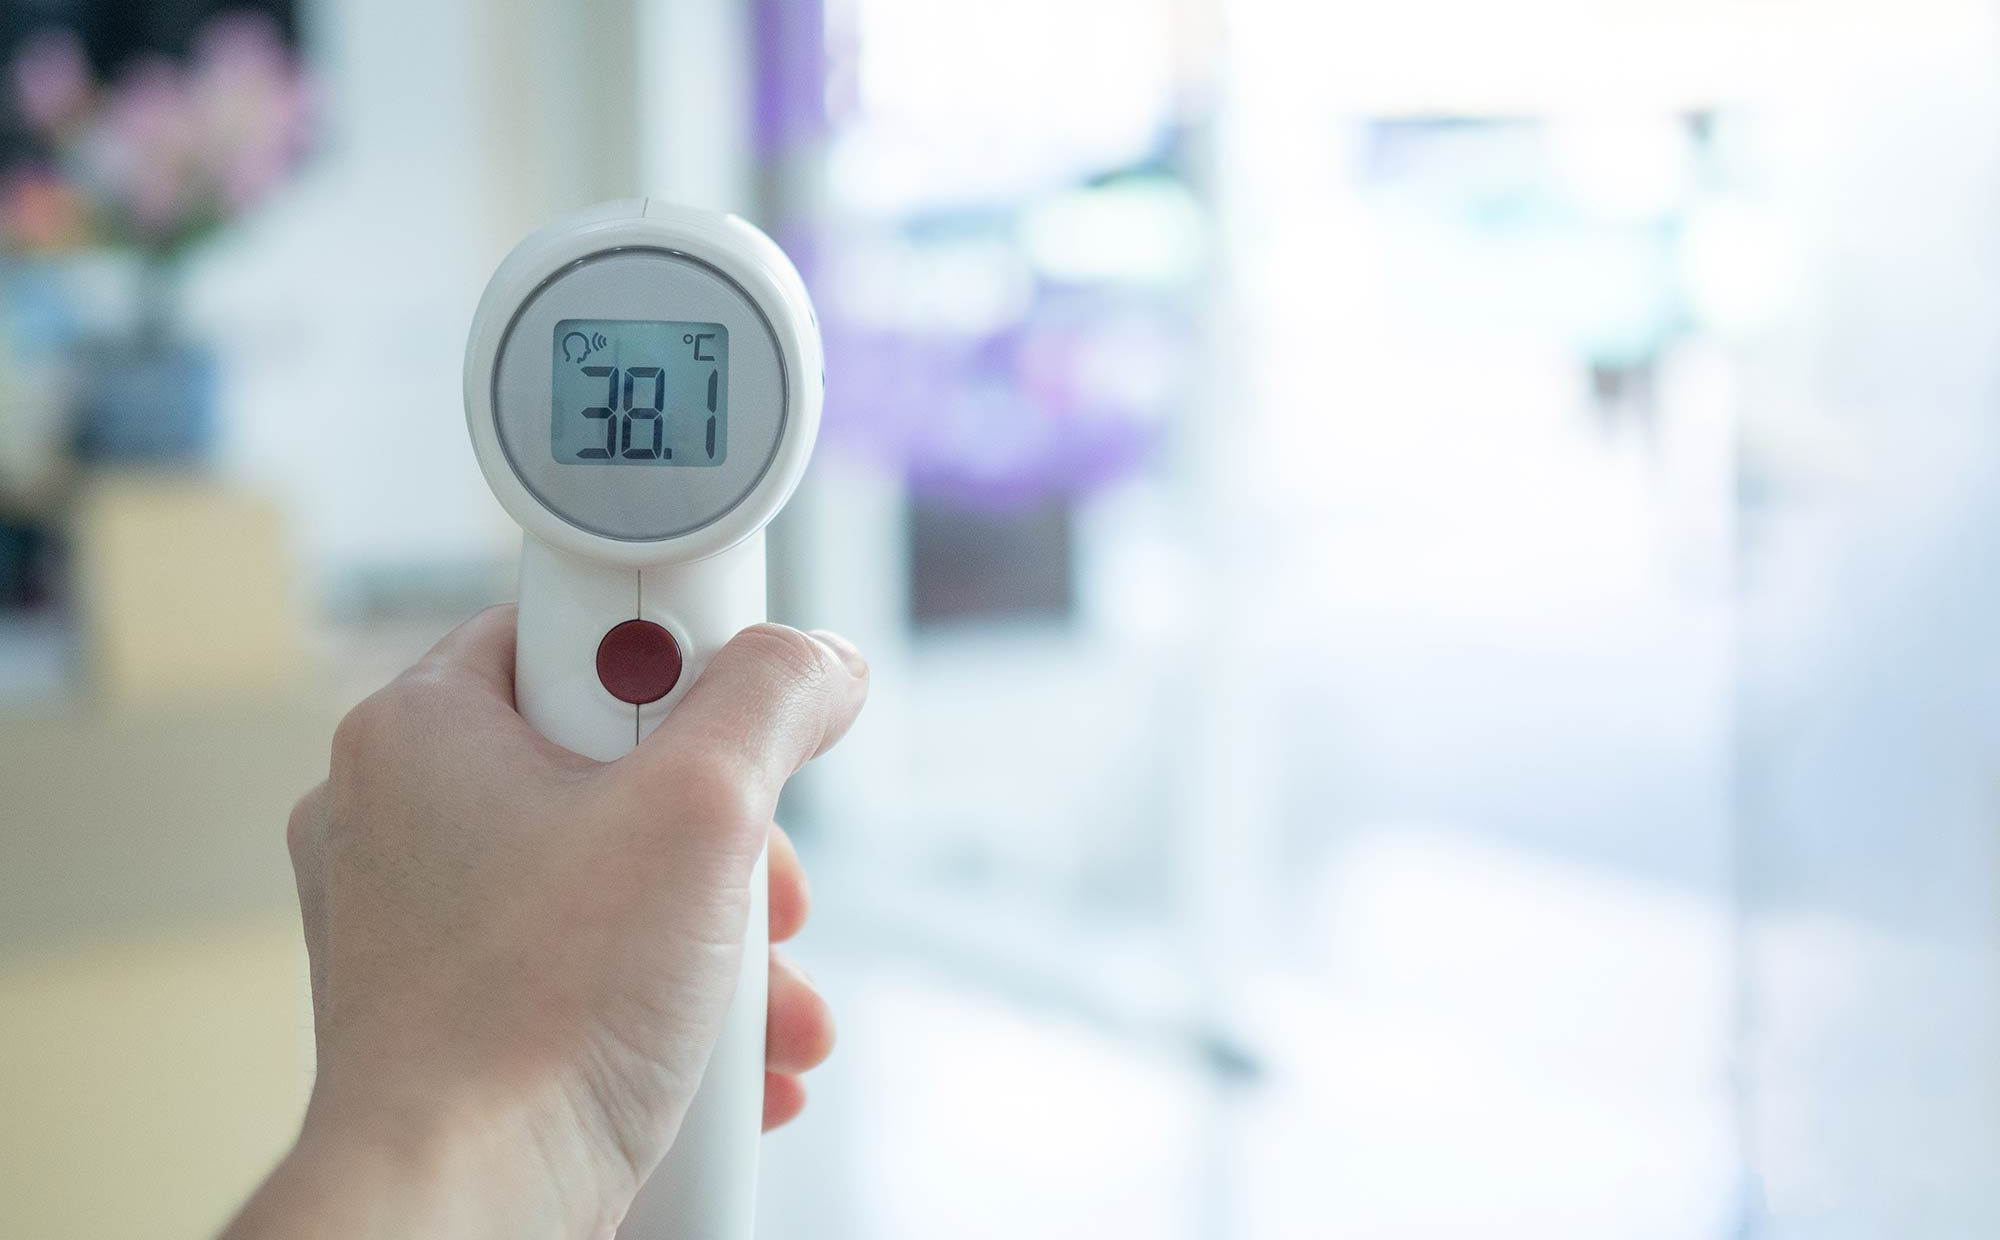 The government is urging the UK to use temperature screening products with caution